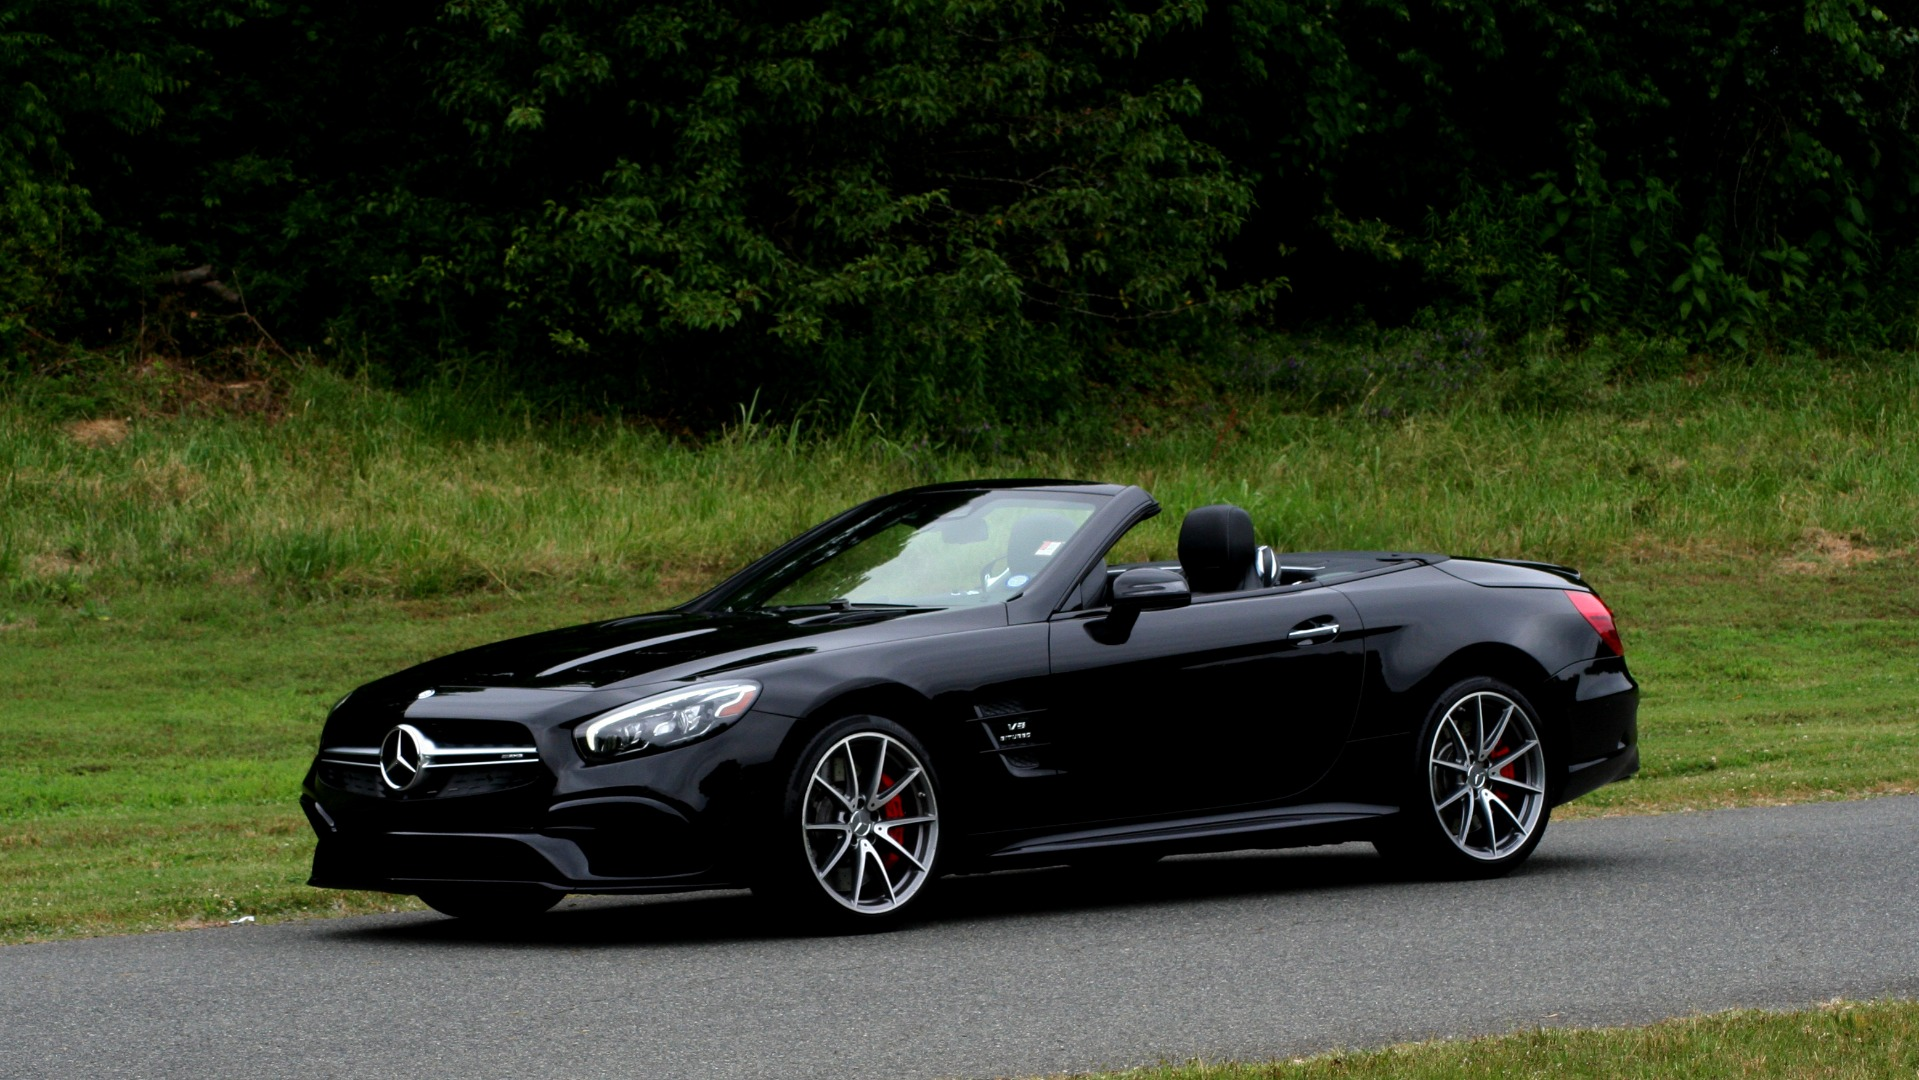 Used 2017 Mercedes-Benz SL 63 AMG / ROADSTER / DRIVER ASSIST / NAV / CAMERA for sale Sold at Formula Imports in Charlotte NC 28227 1